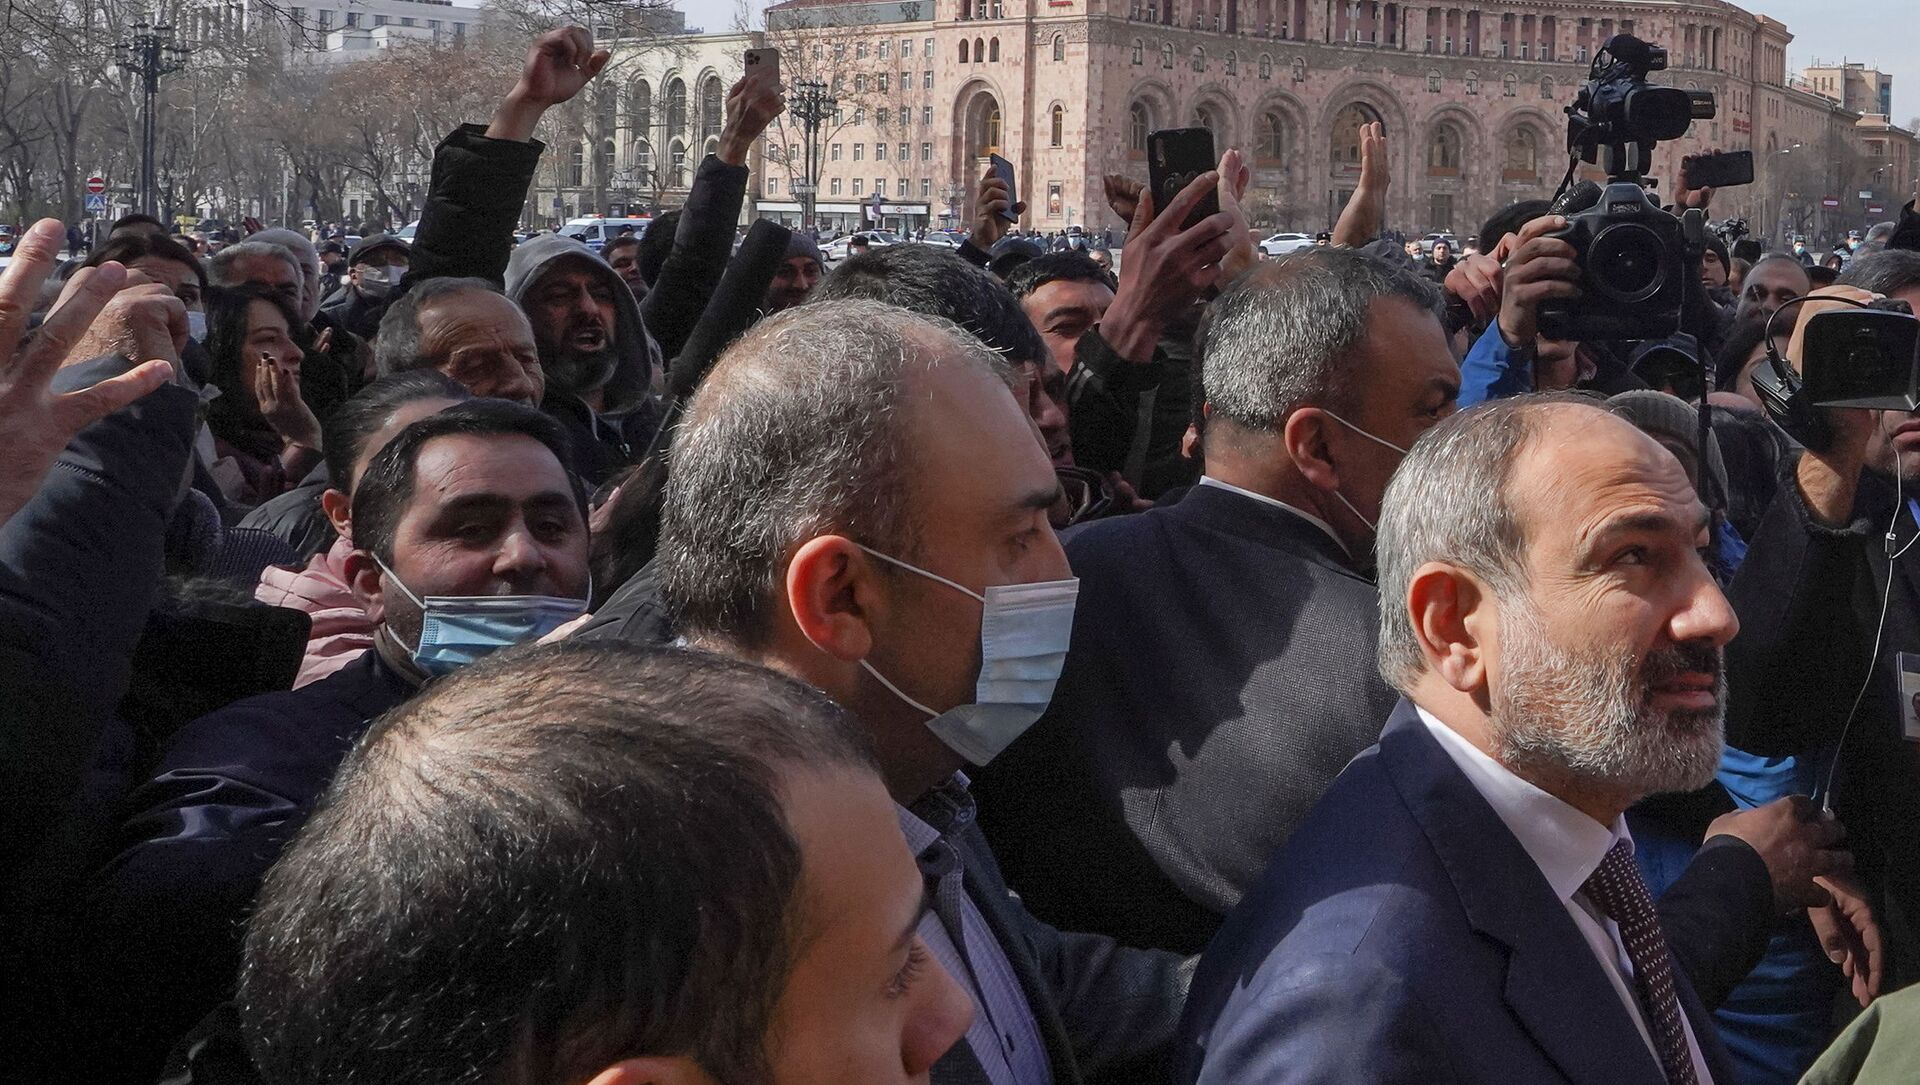 Armenian Prime Minister Nikol Pashinyan meets with participants of a gathering after he called on followers to rally in the centre of Yerevan, Armenia February 25, 2021 - Sputnik Italia, 1920, 13.03.2021